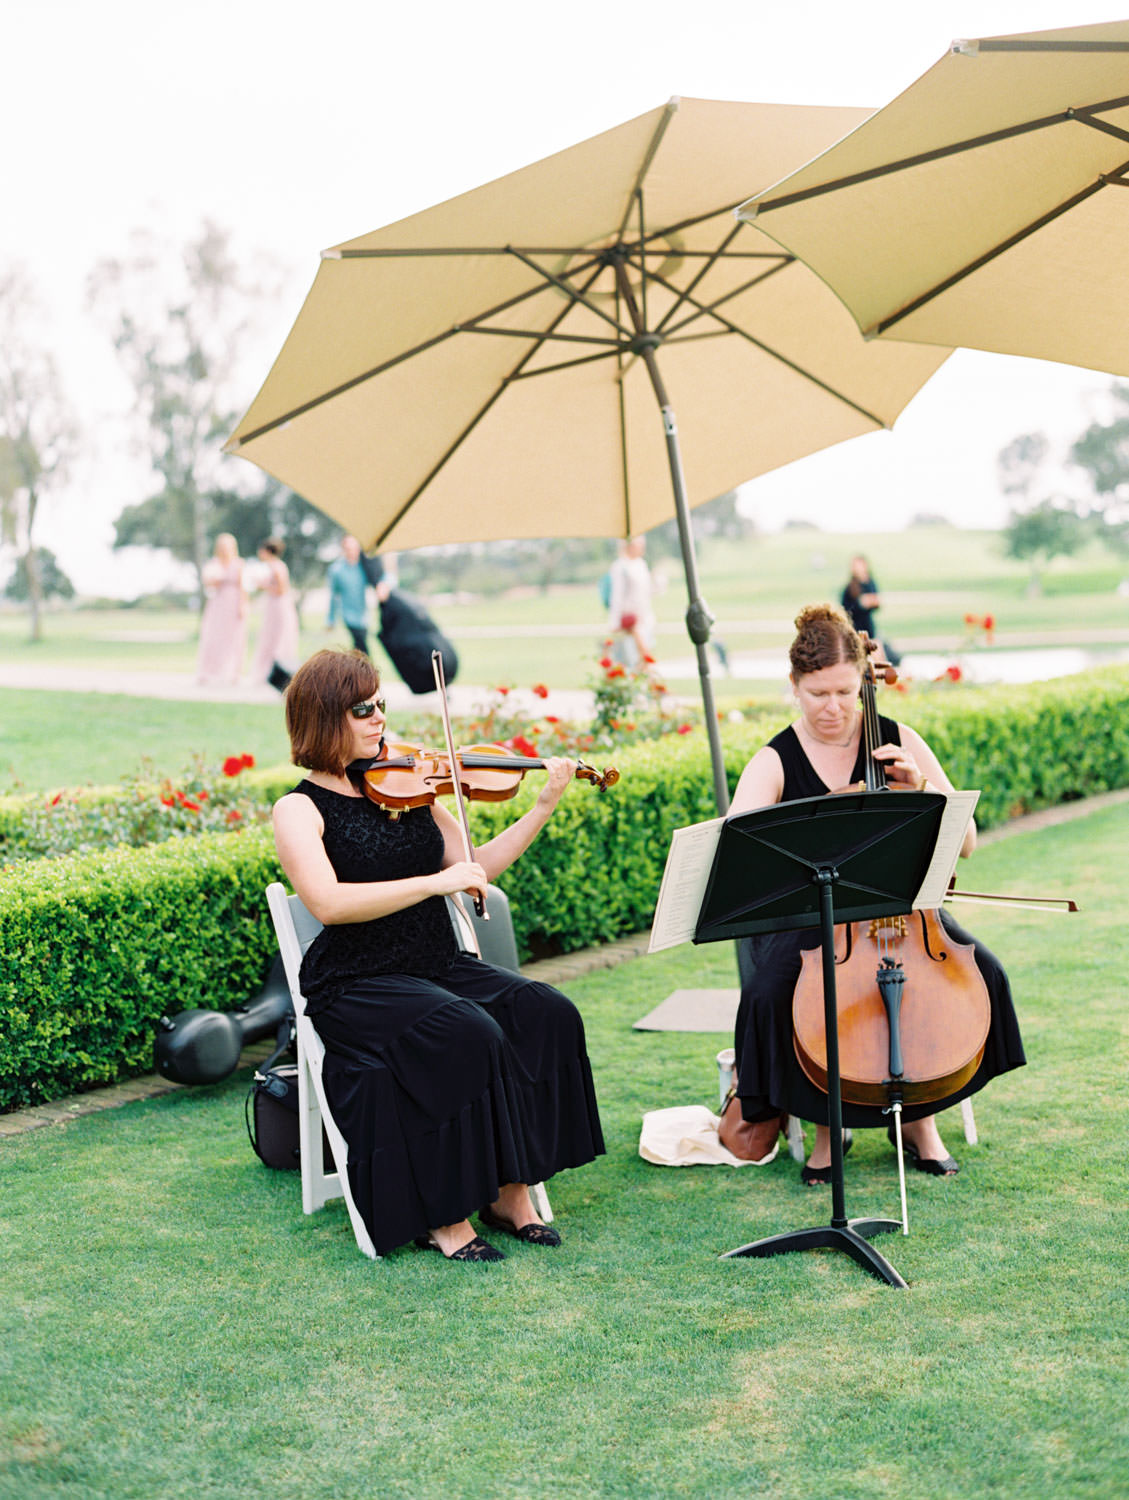 Musicians during cocktail hour outside at a rustic upscale venue in San Diego, Lodge at Torrey Pines wedding, film photography by Cavin Elizabeth Photography